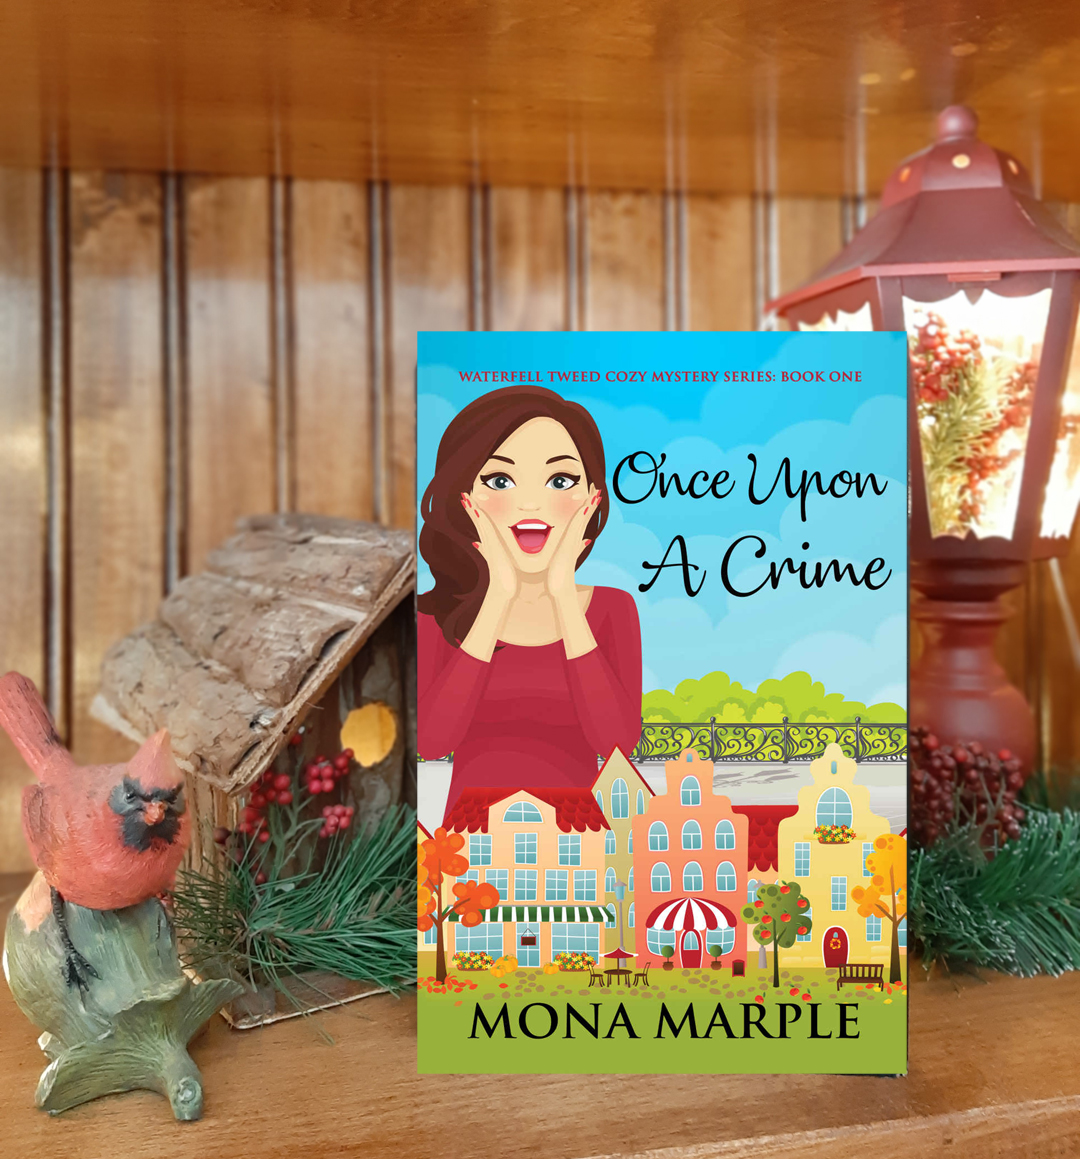 Mona Marple – Once Upon a Crime (Waterfall Tweed Cozy Mystery Series #1)